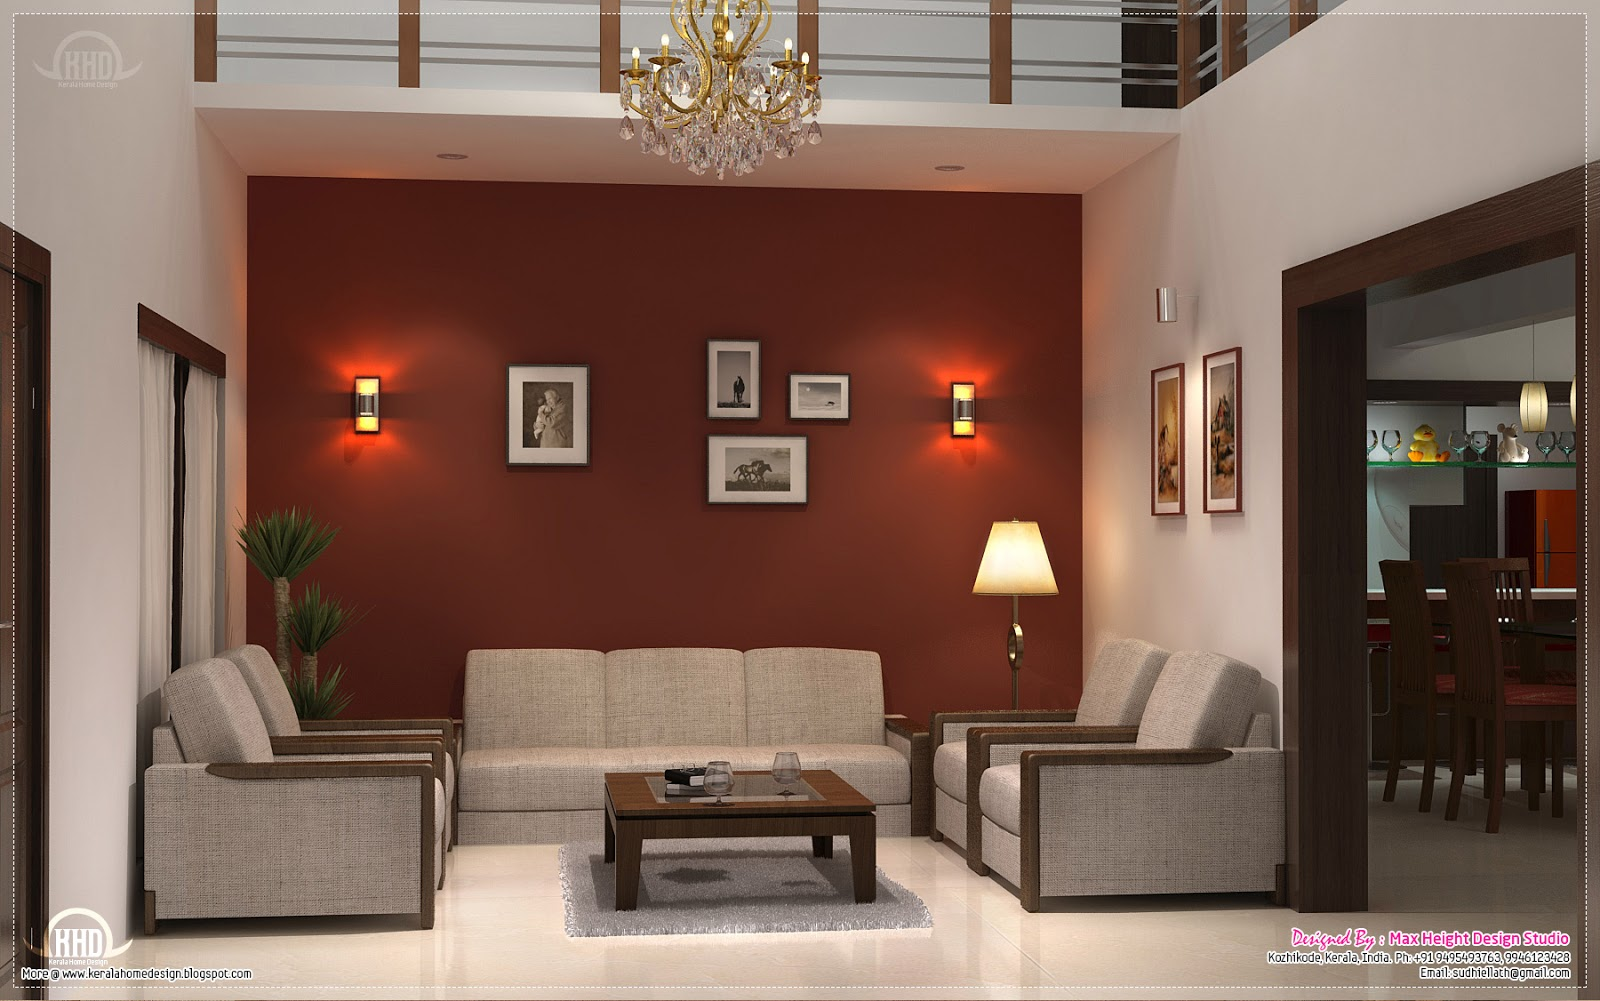 Home interior design ideas kerala home design and floor for House interior design ideas